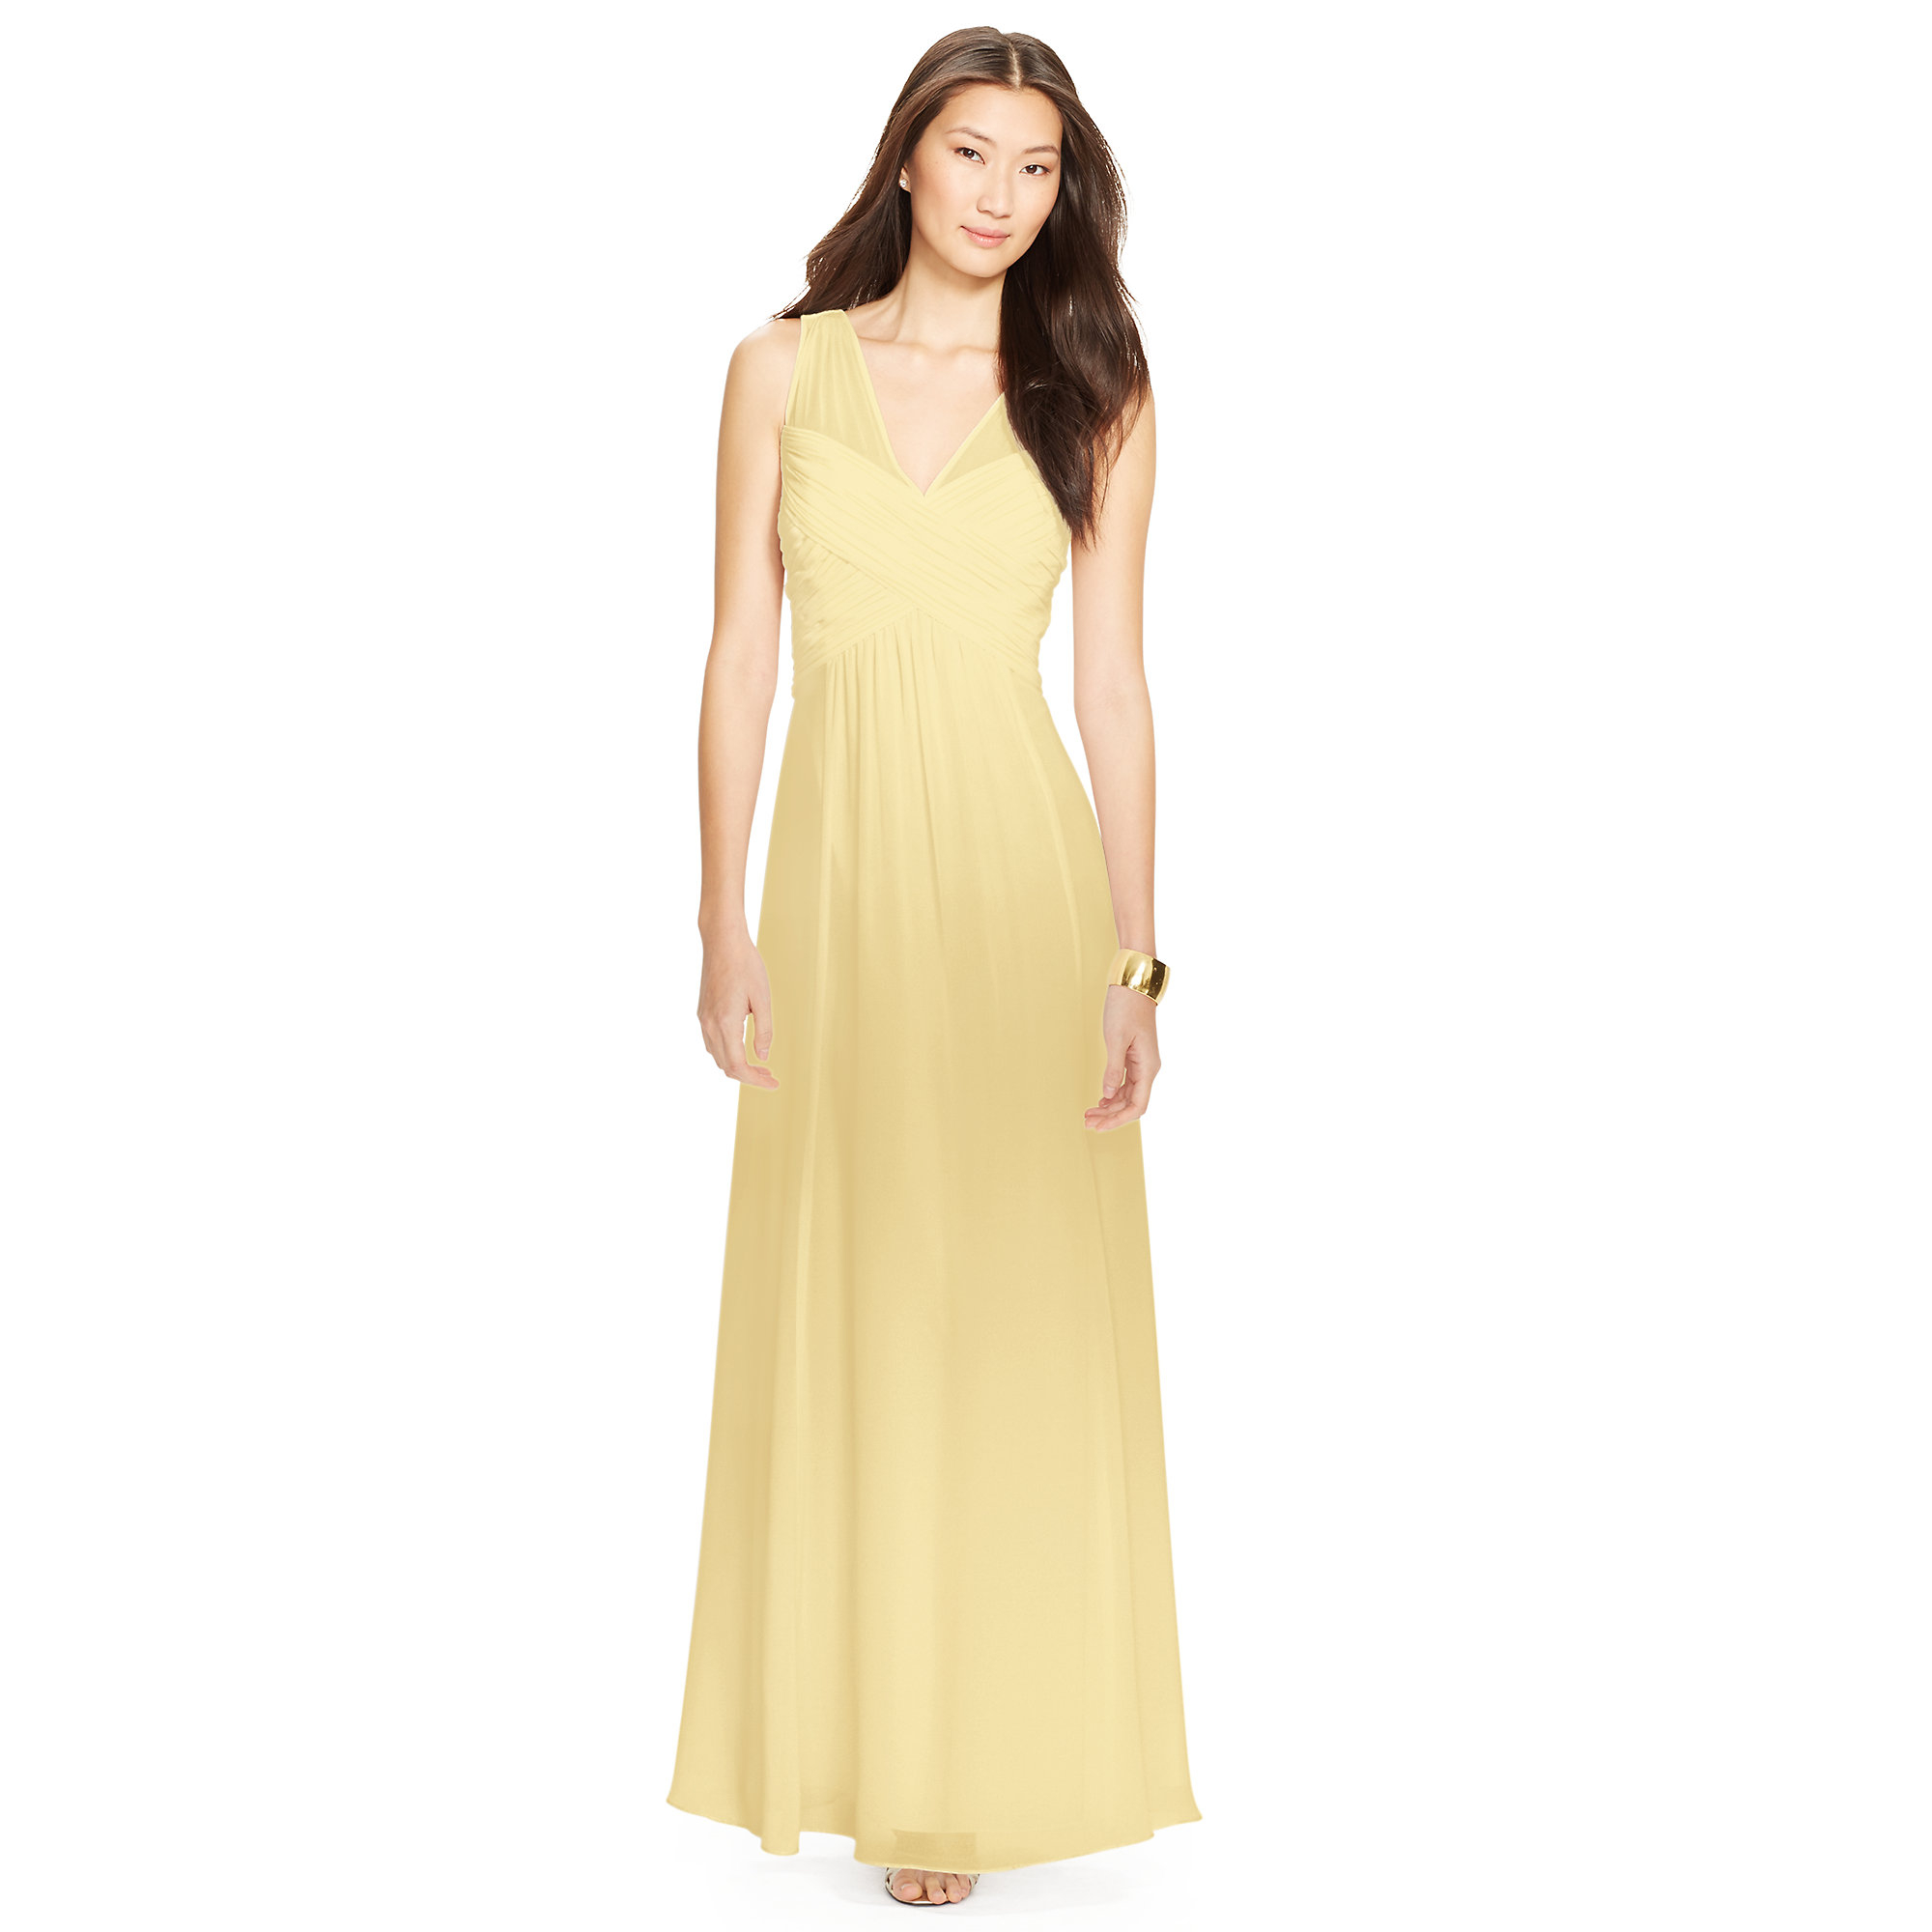 Ralph lauren ruched sleeveless gown in yellow lyst for Tj maxx wedding guest dresses